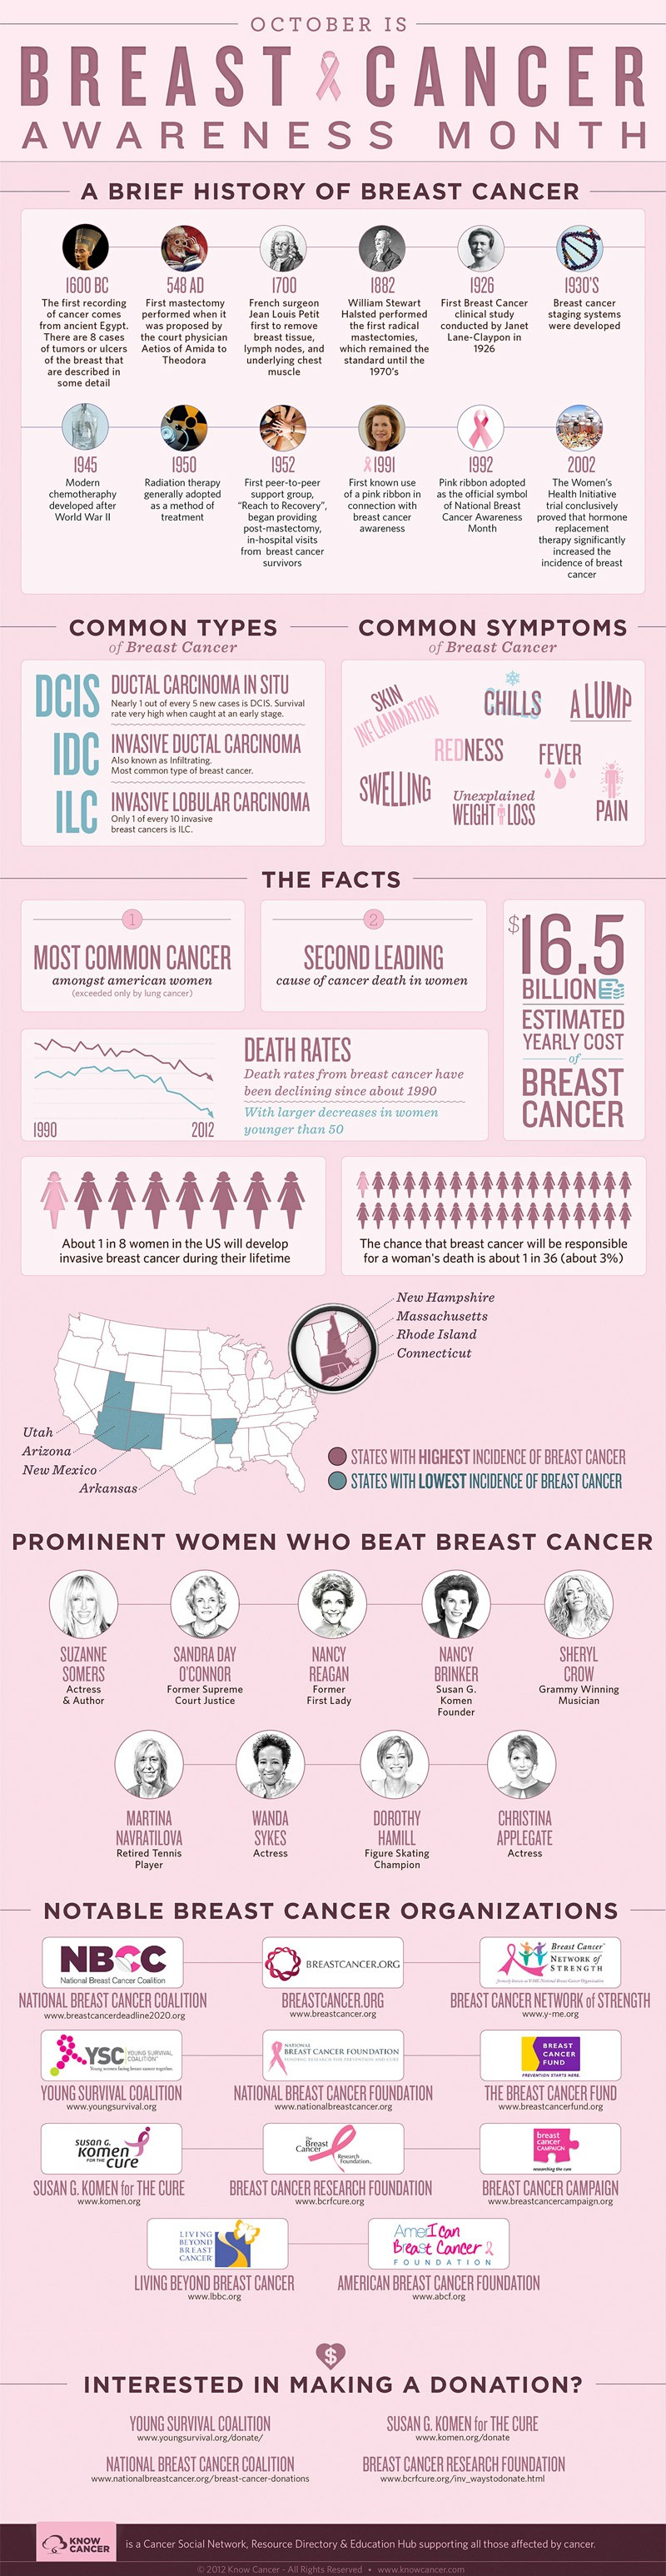 Breast cancer awareness month facts.